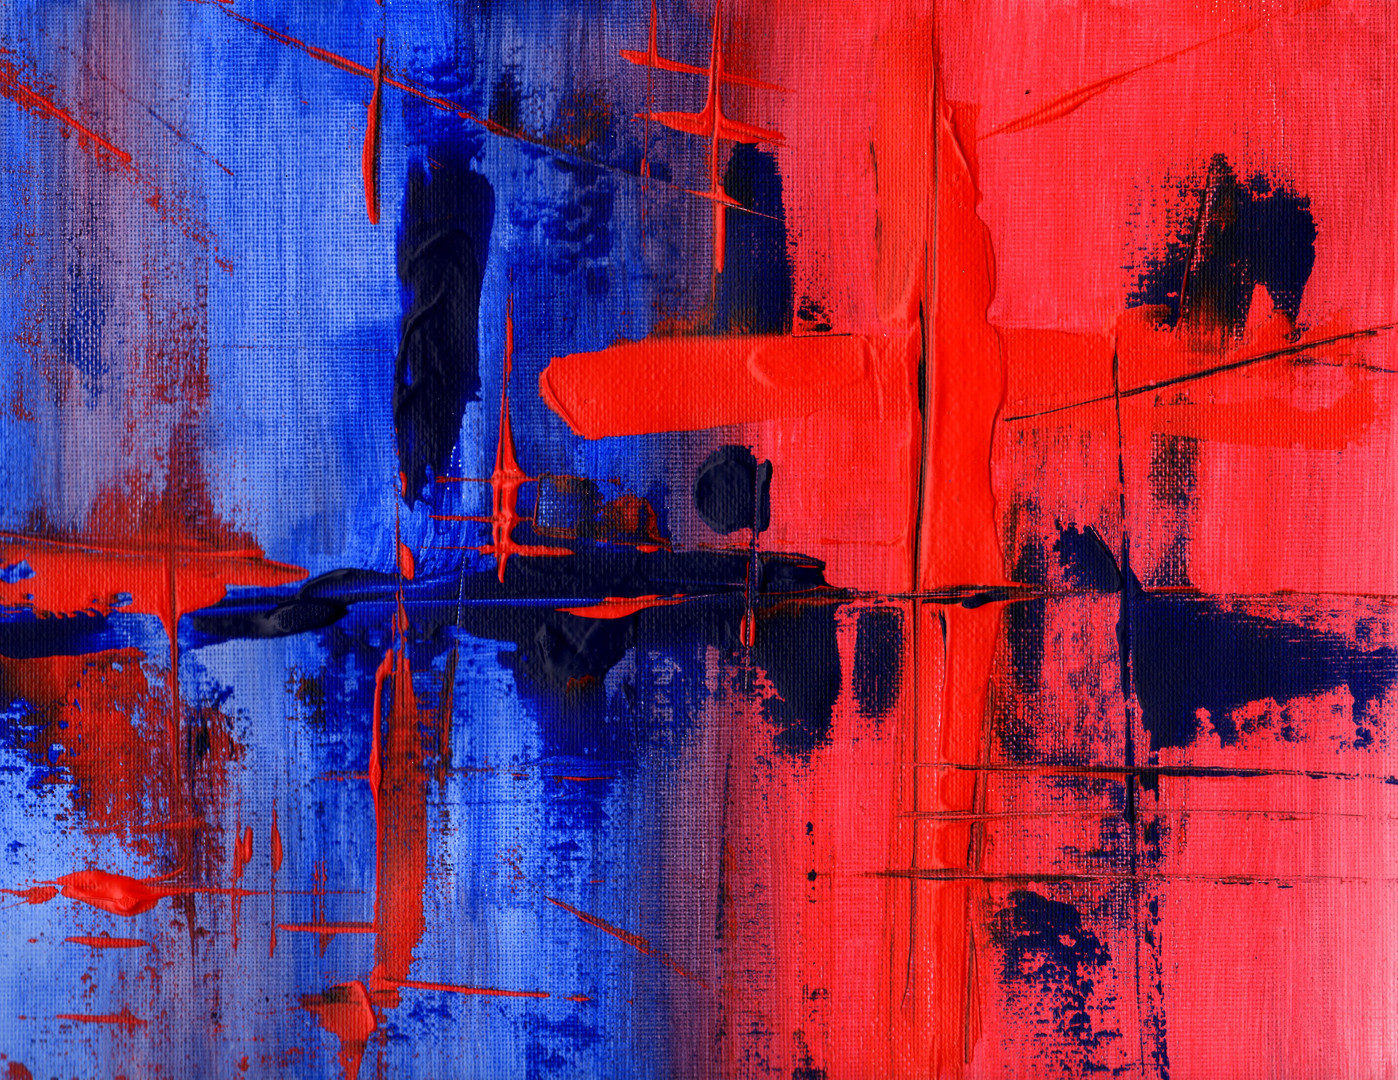 Interplay of Blue and Red